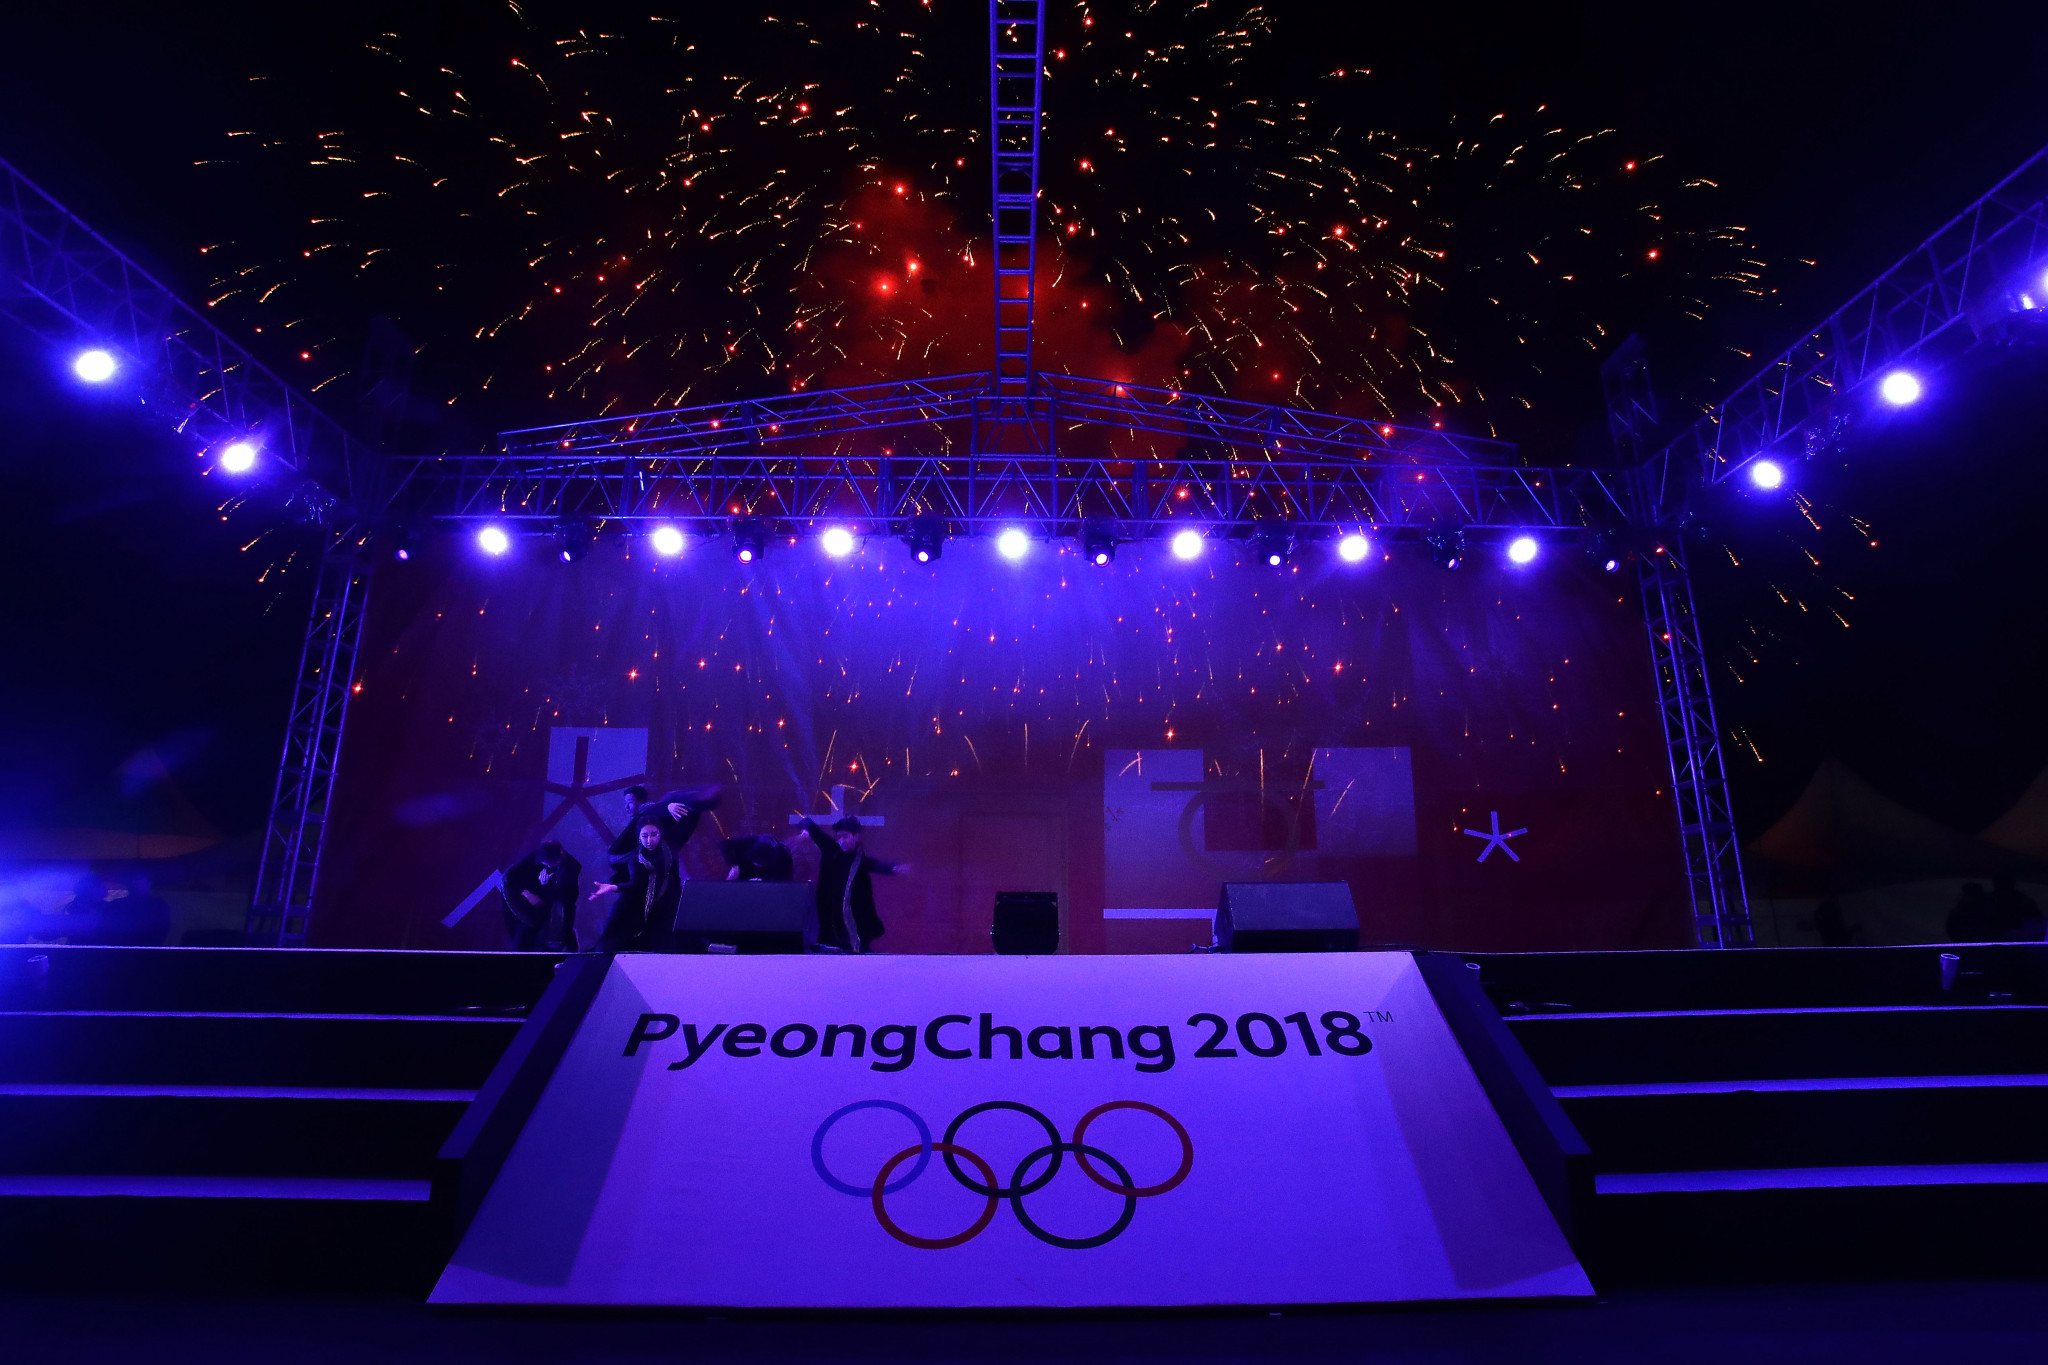 Athletes to travel to Pyeongchang 2018 on buses rather than high-speed railway